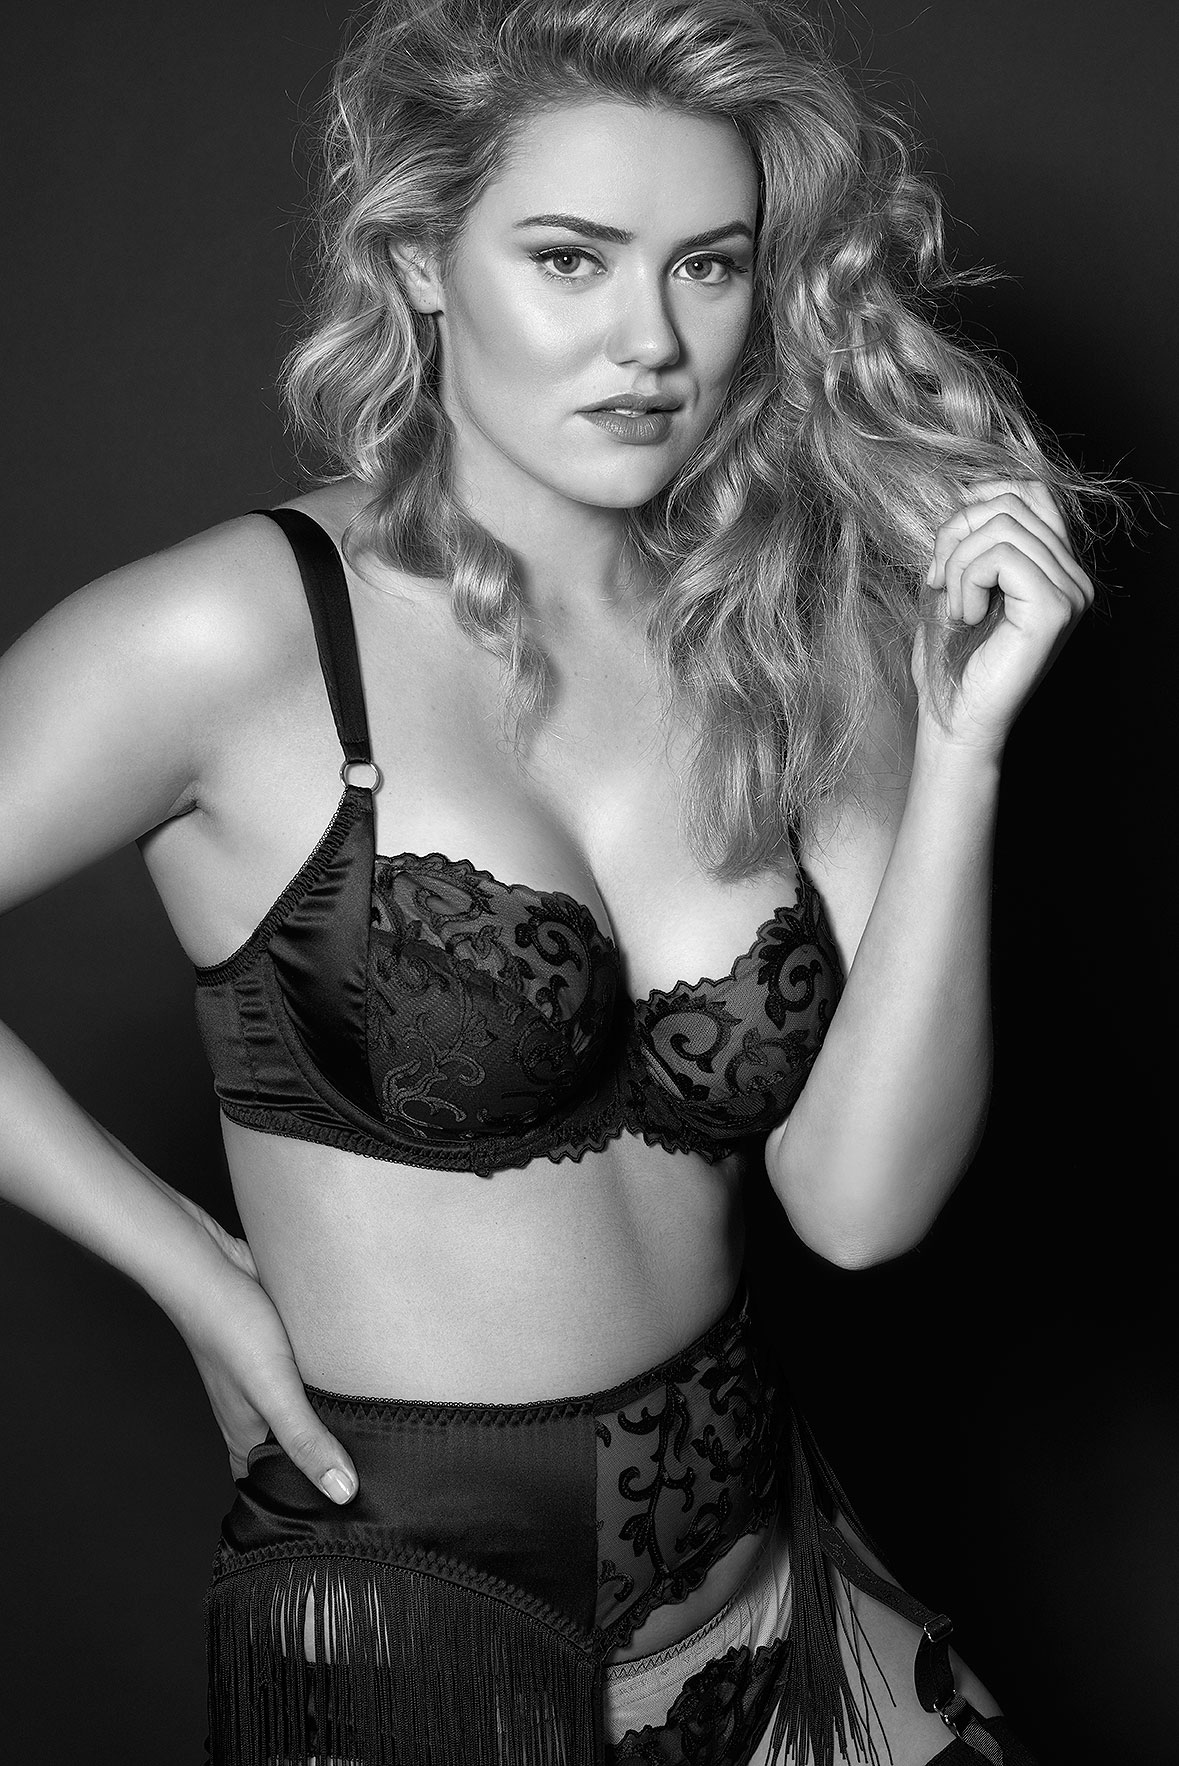 Lingerie-la-femme-larger-cup-lingerie-plus-size-model-kate-m-milk-models-harlow-and-fox-09